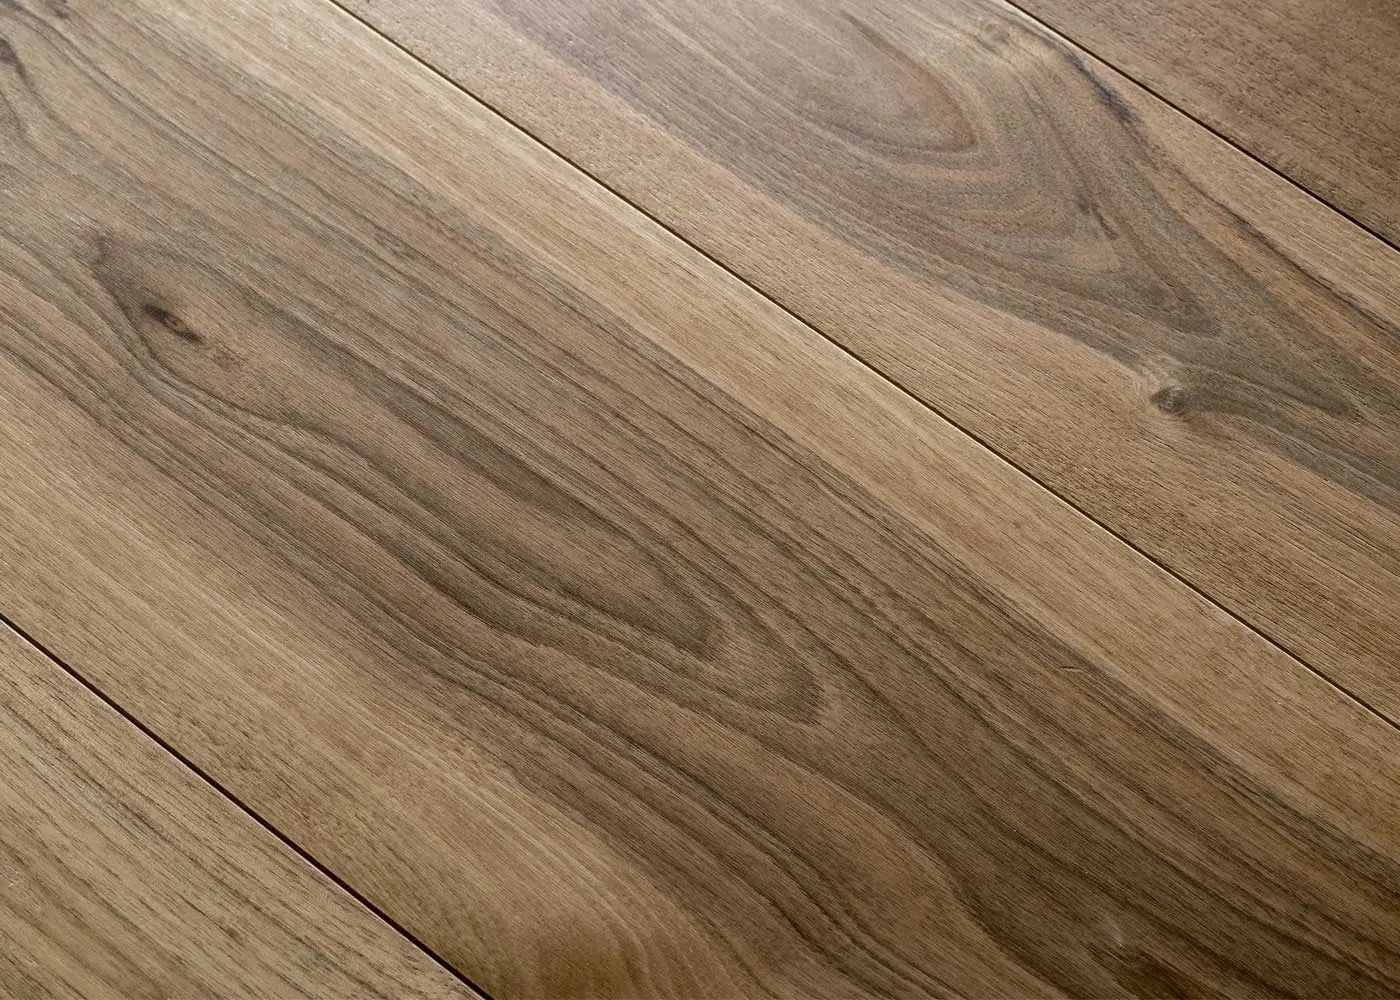 Parquet In Noce Parquet In Noce Europeo Calde Trame A Pavimento Gt Andhome